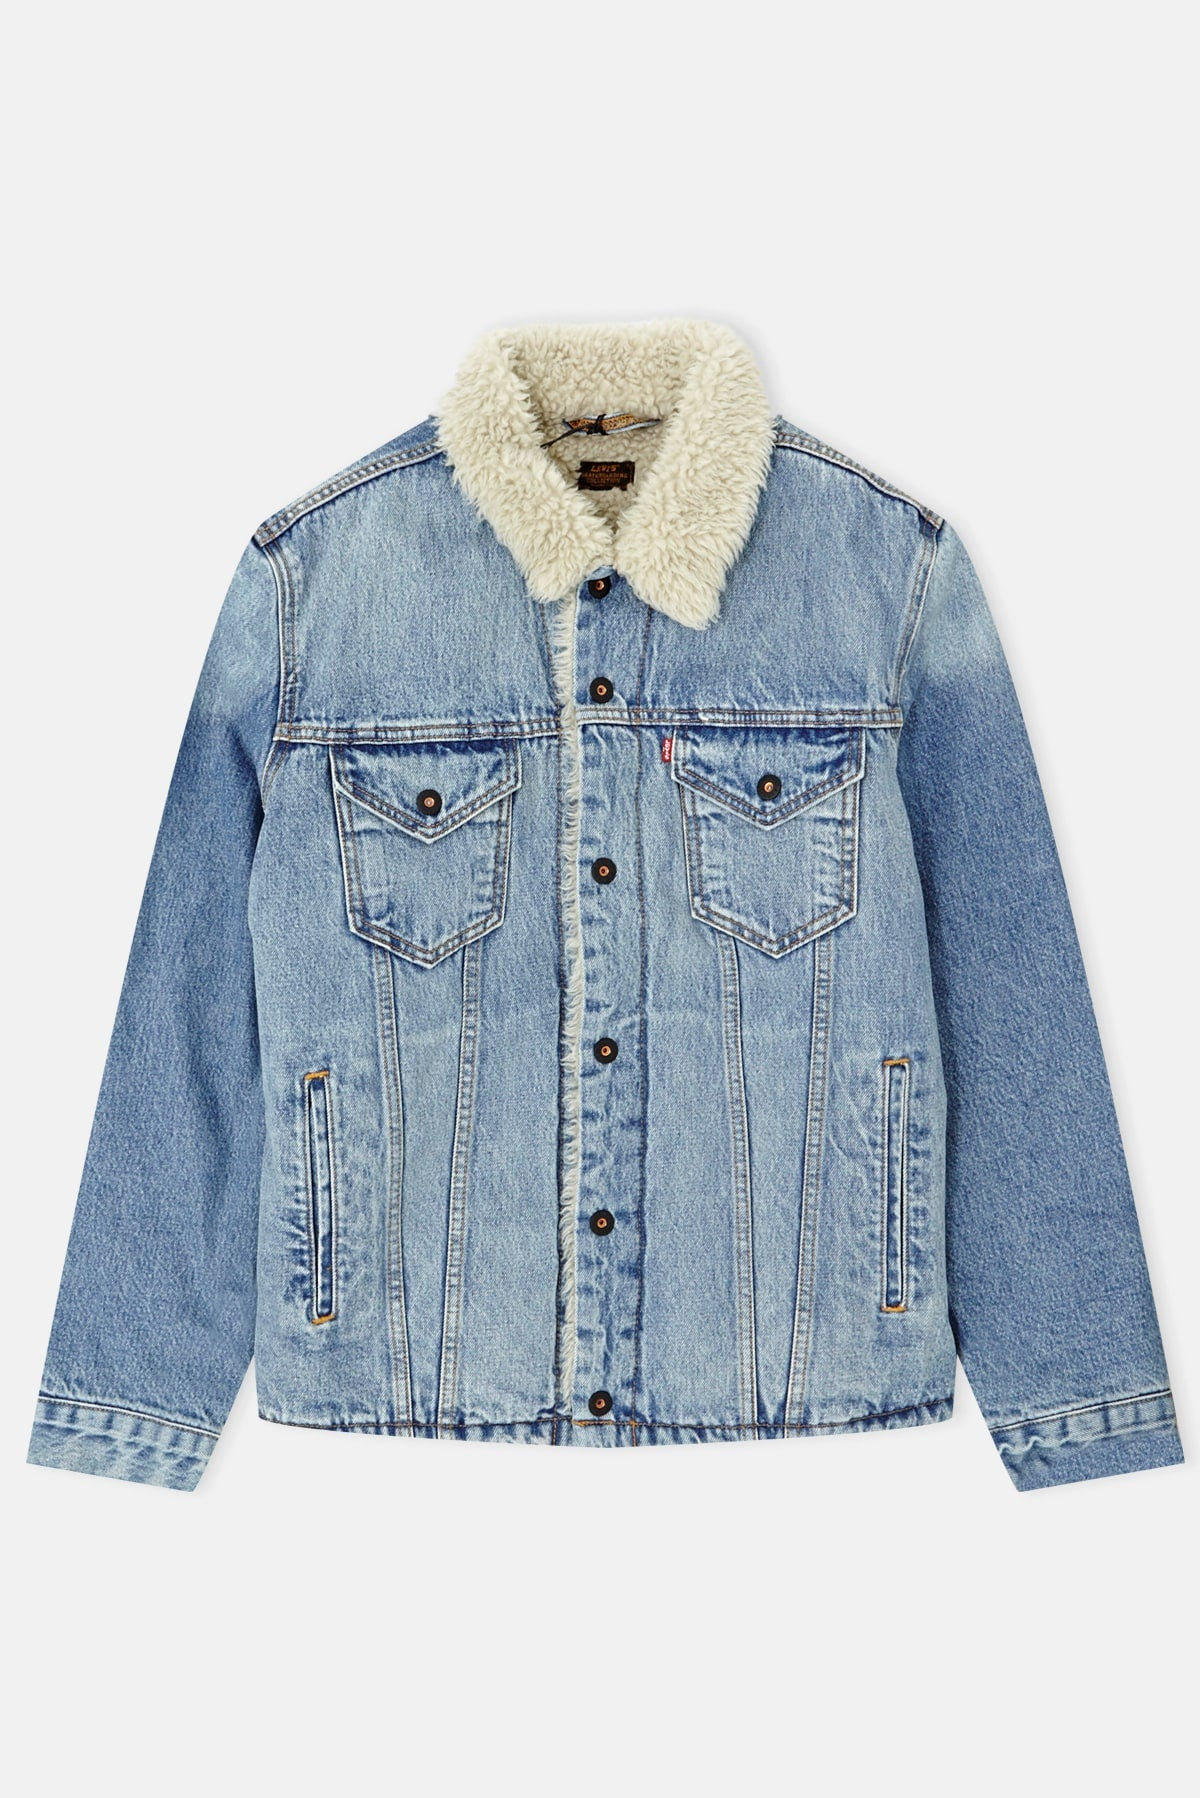 7faa9c1d4a Levis Skate Sherpa Trucker Jacket available from Priory